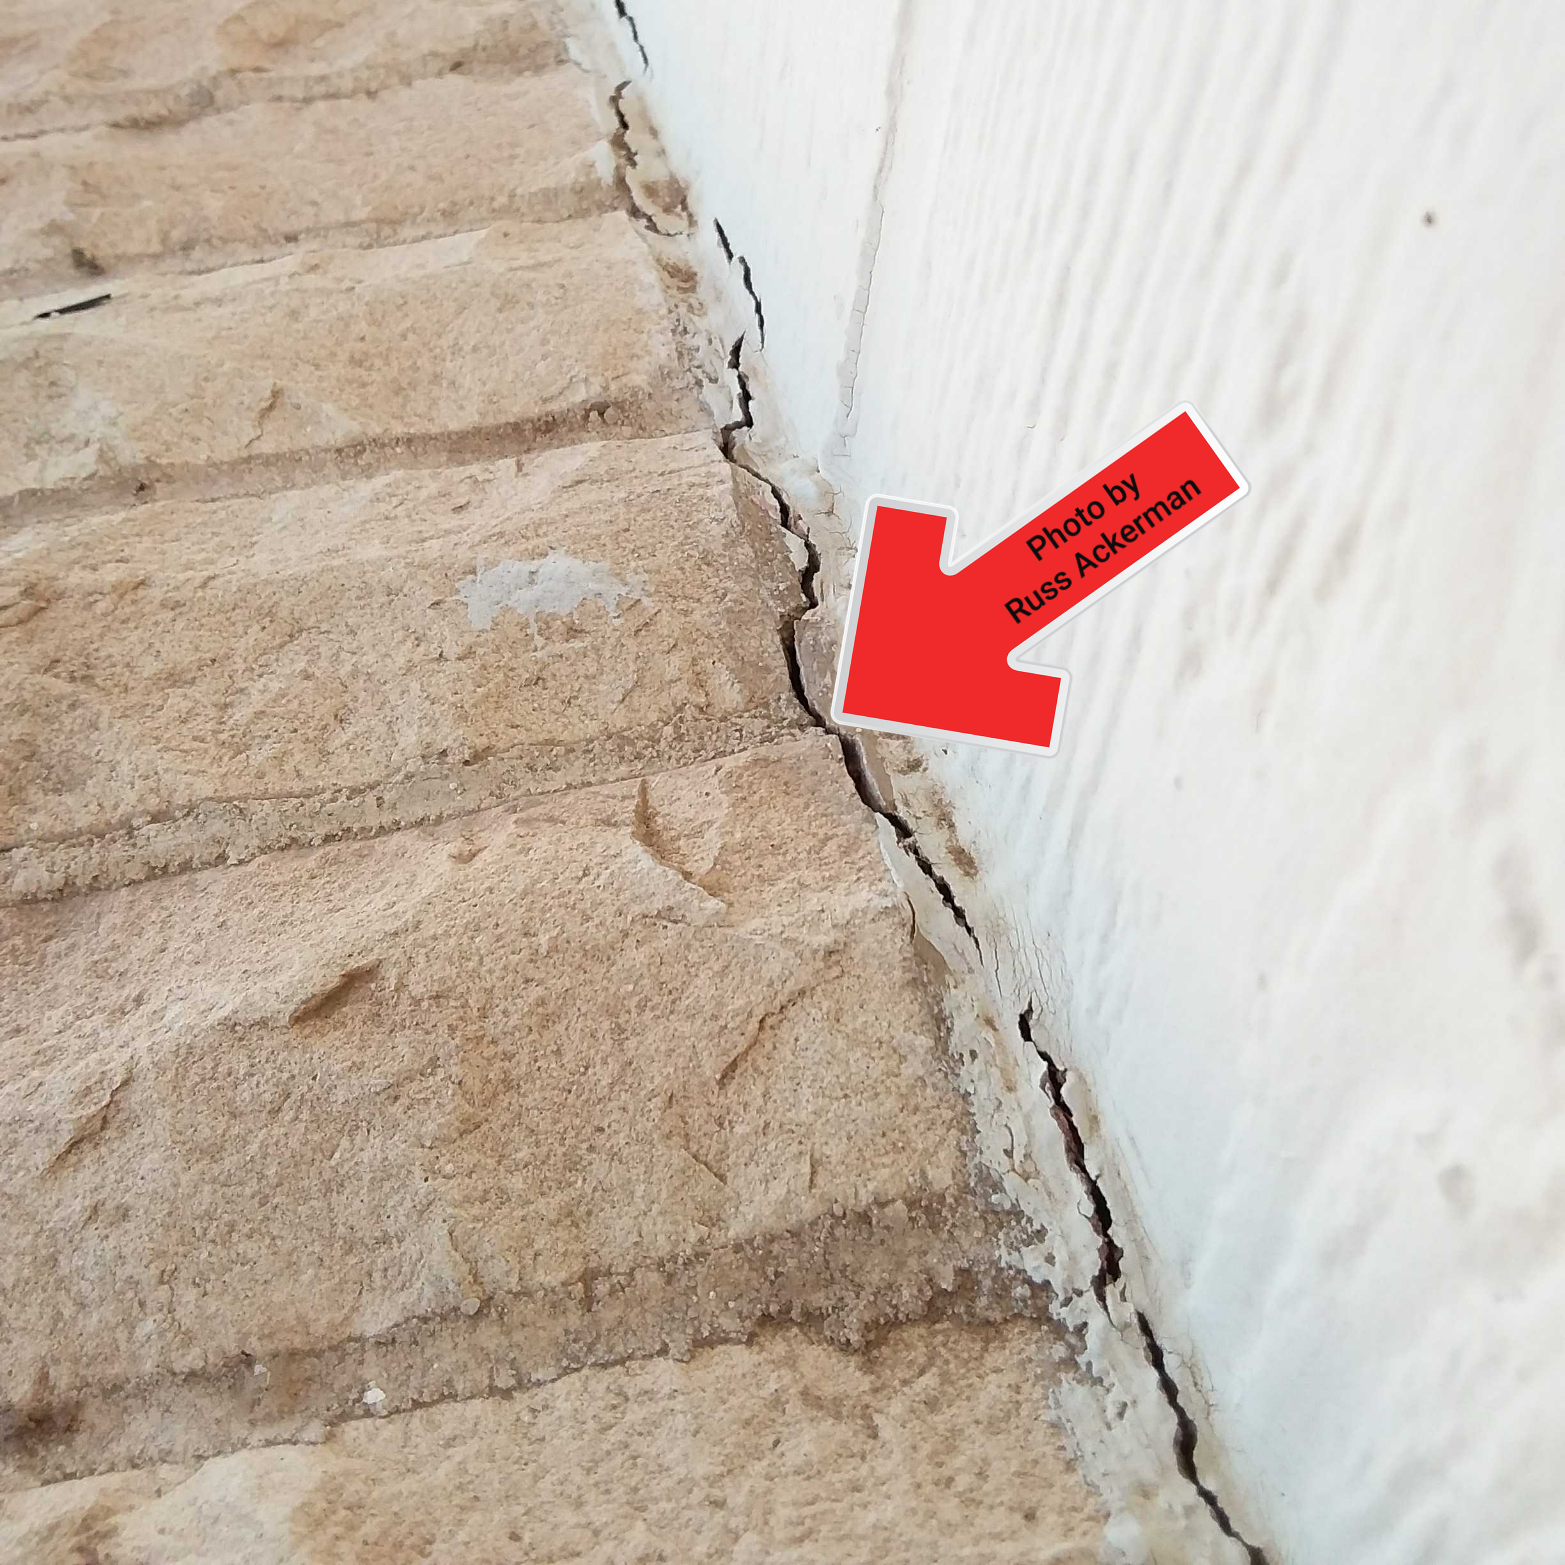 Missing flashing at brick siding should be caulked regularly. Keeping water out of the wall cavity will protect the metal wall ties holding the brick in place.